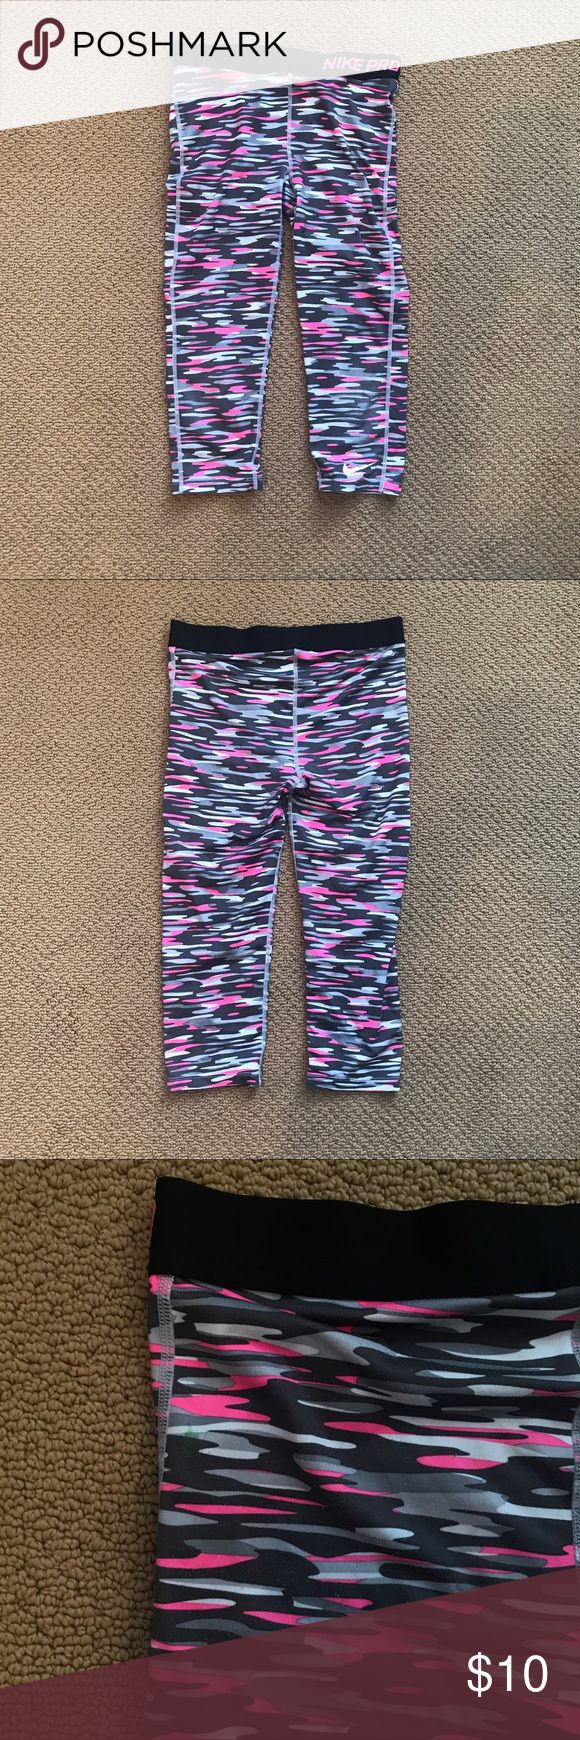 Nike Pro Pants Good condition. Make me an offer. Nike Bottoms Leggings